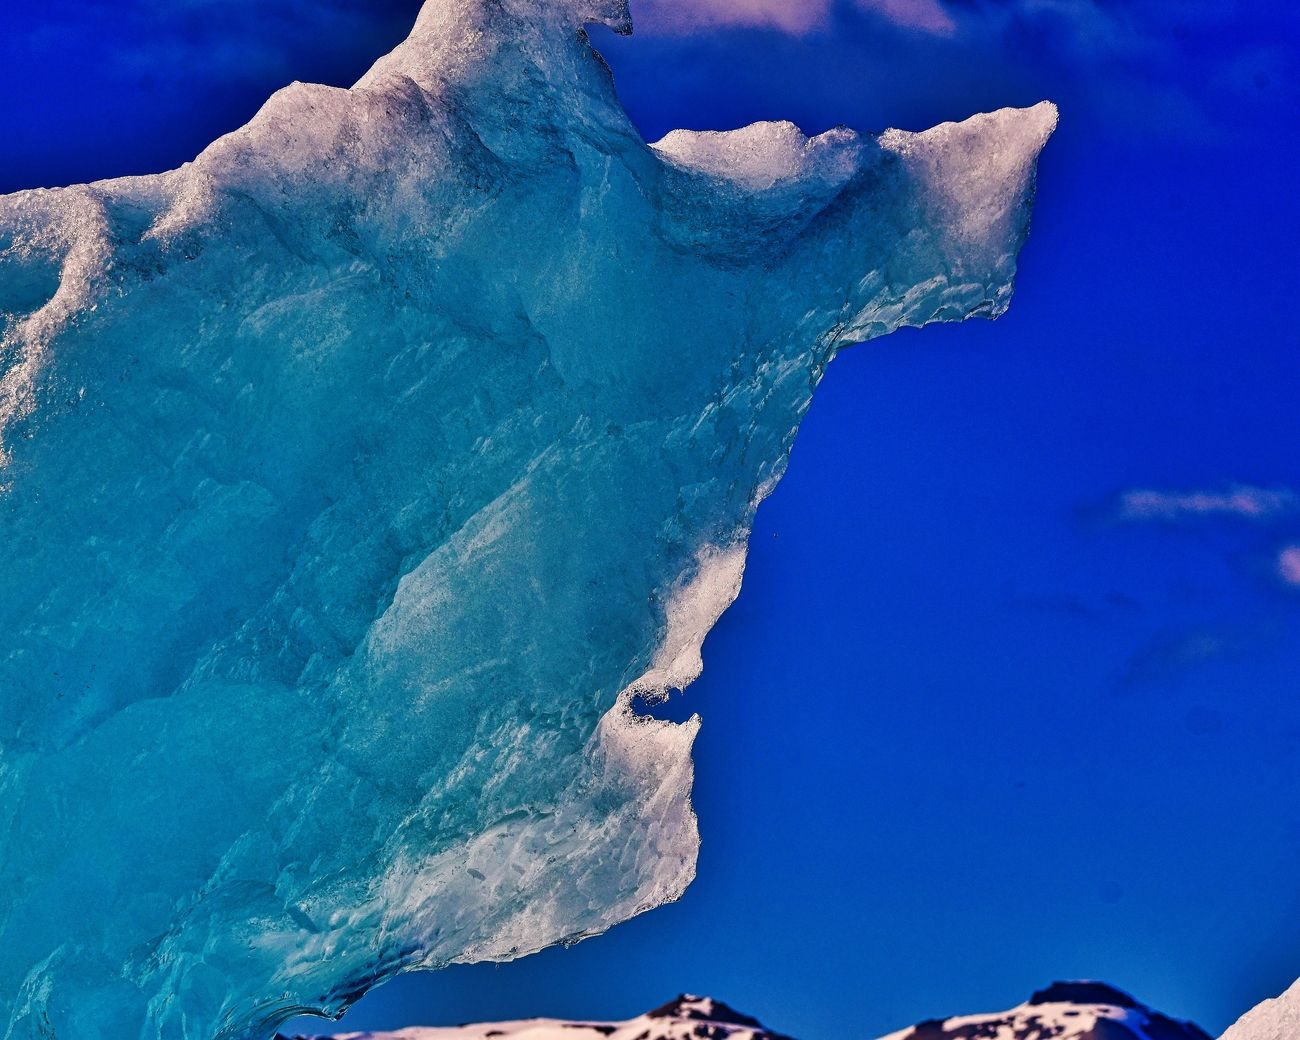 Ice man,  glacial ice melting in the sun.  Photo taken at the 14th July Glacier in Svalbard, Norway